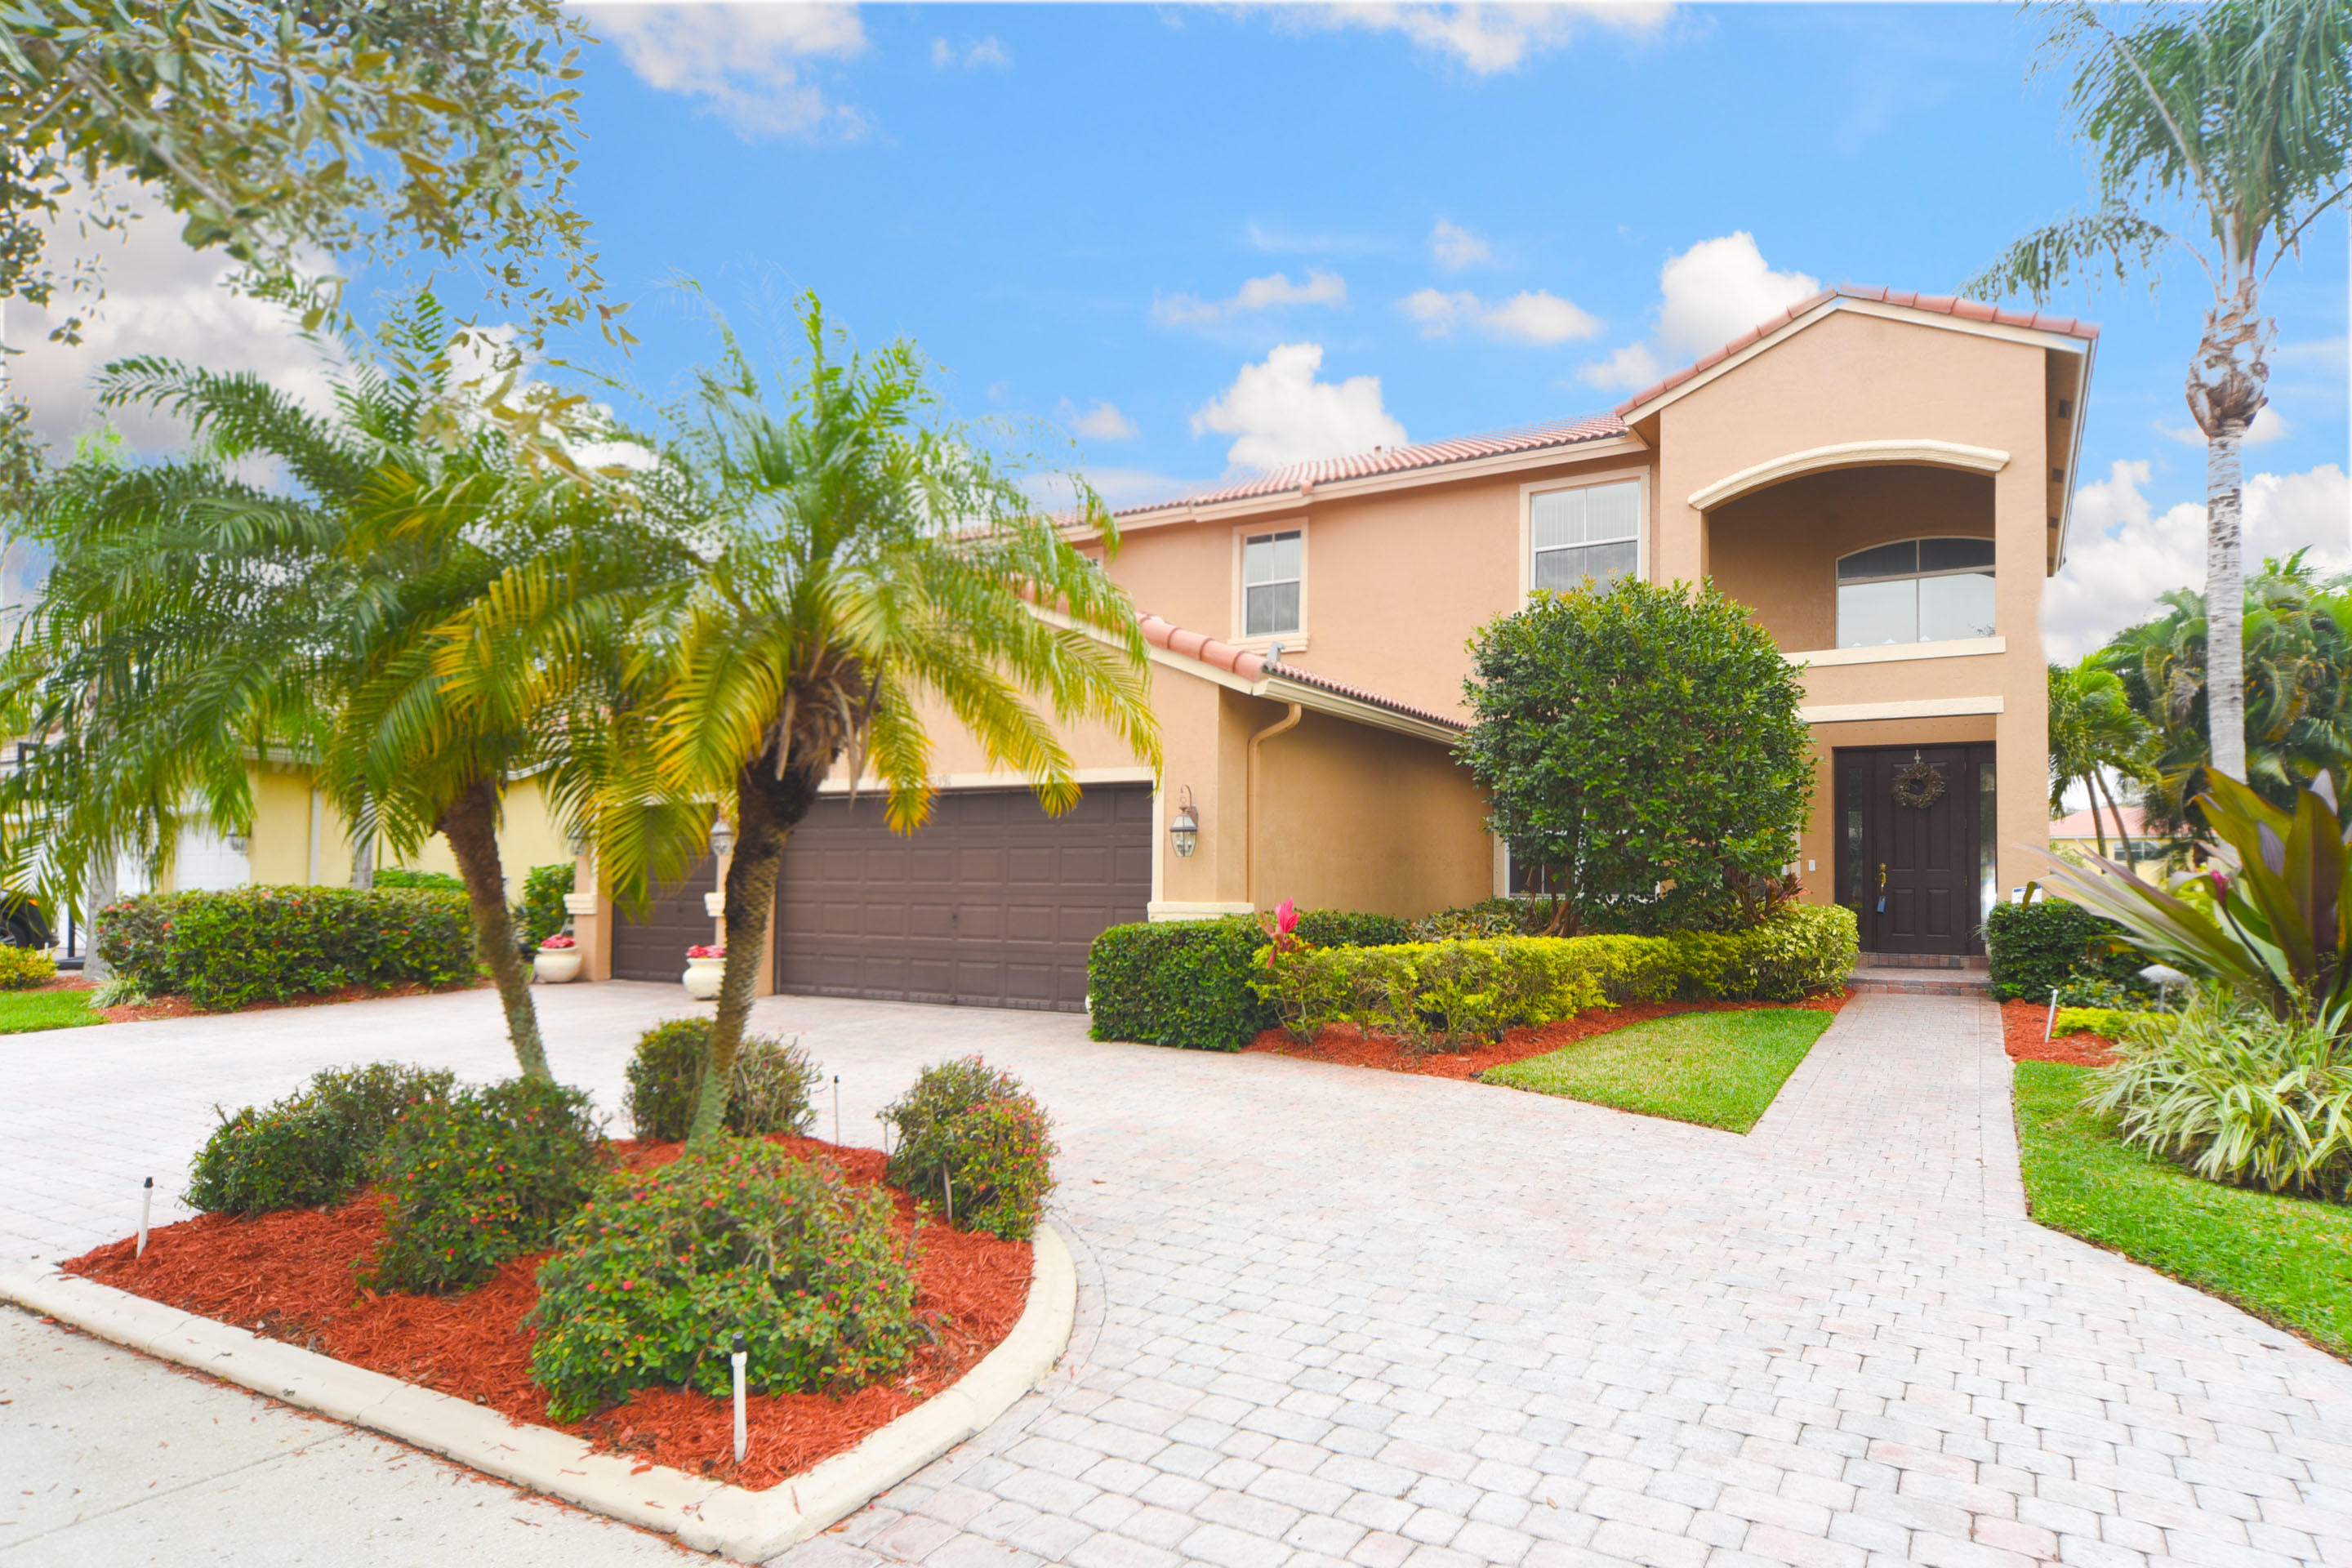 Home for sale in Fieldstone, Cypress Lakes Preserve Lake Worth Florida